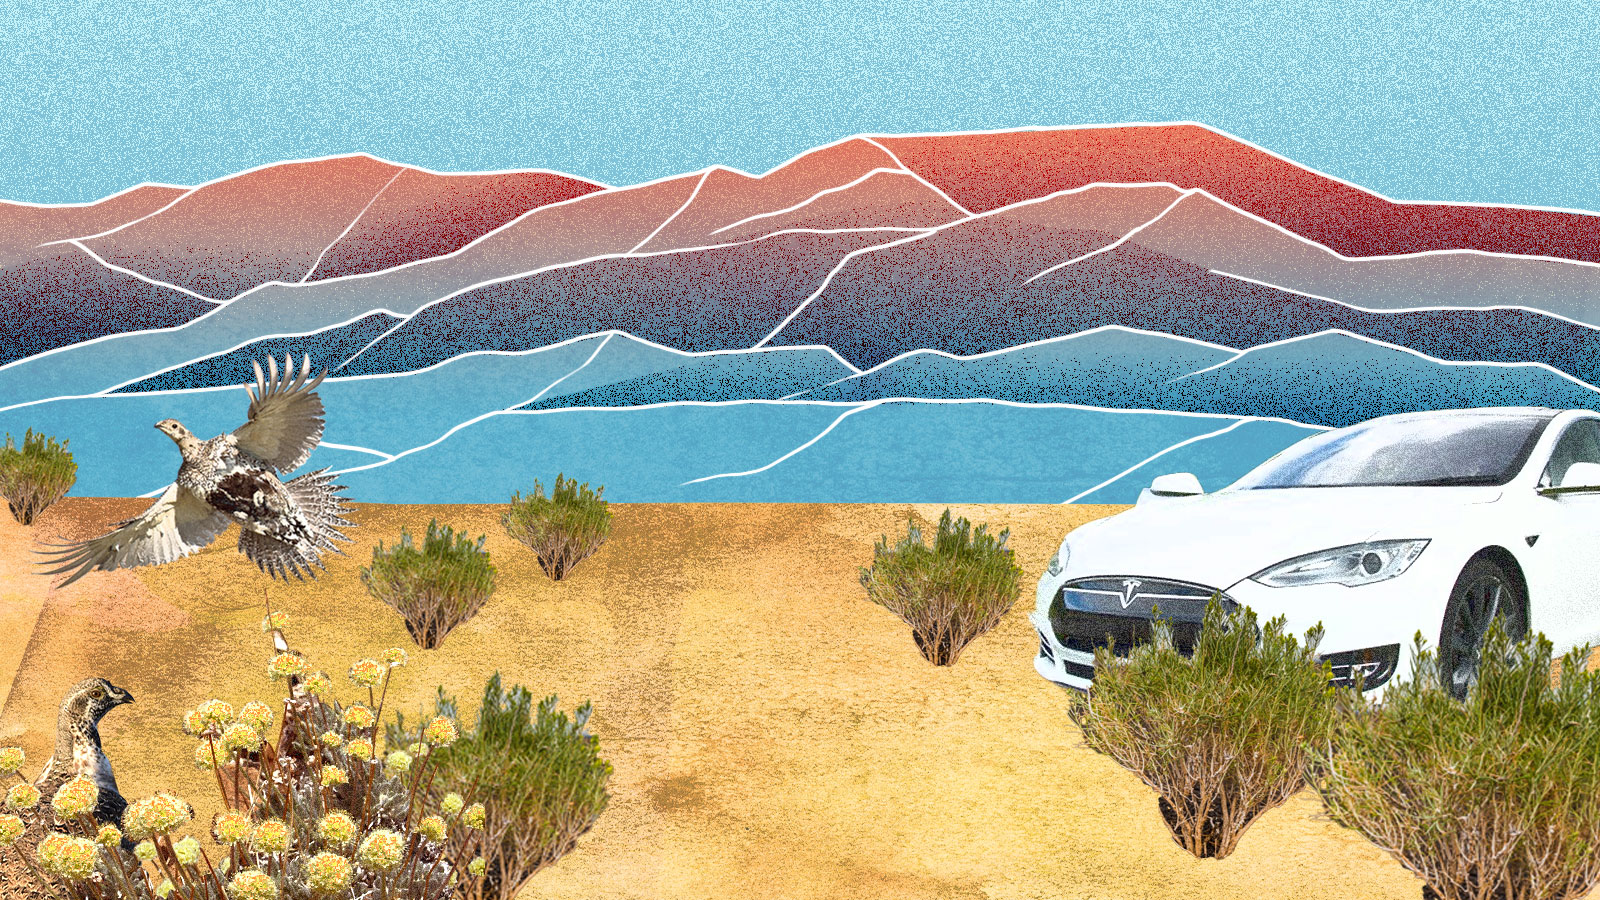 An illustration of Nevada's Thacker pass. In the background are hand-drawn mountains in sunset colors. In the foreground, an electric car is parked among patches of buckwheat and brush. A bird is about to take flight on the left side of the image.